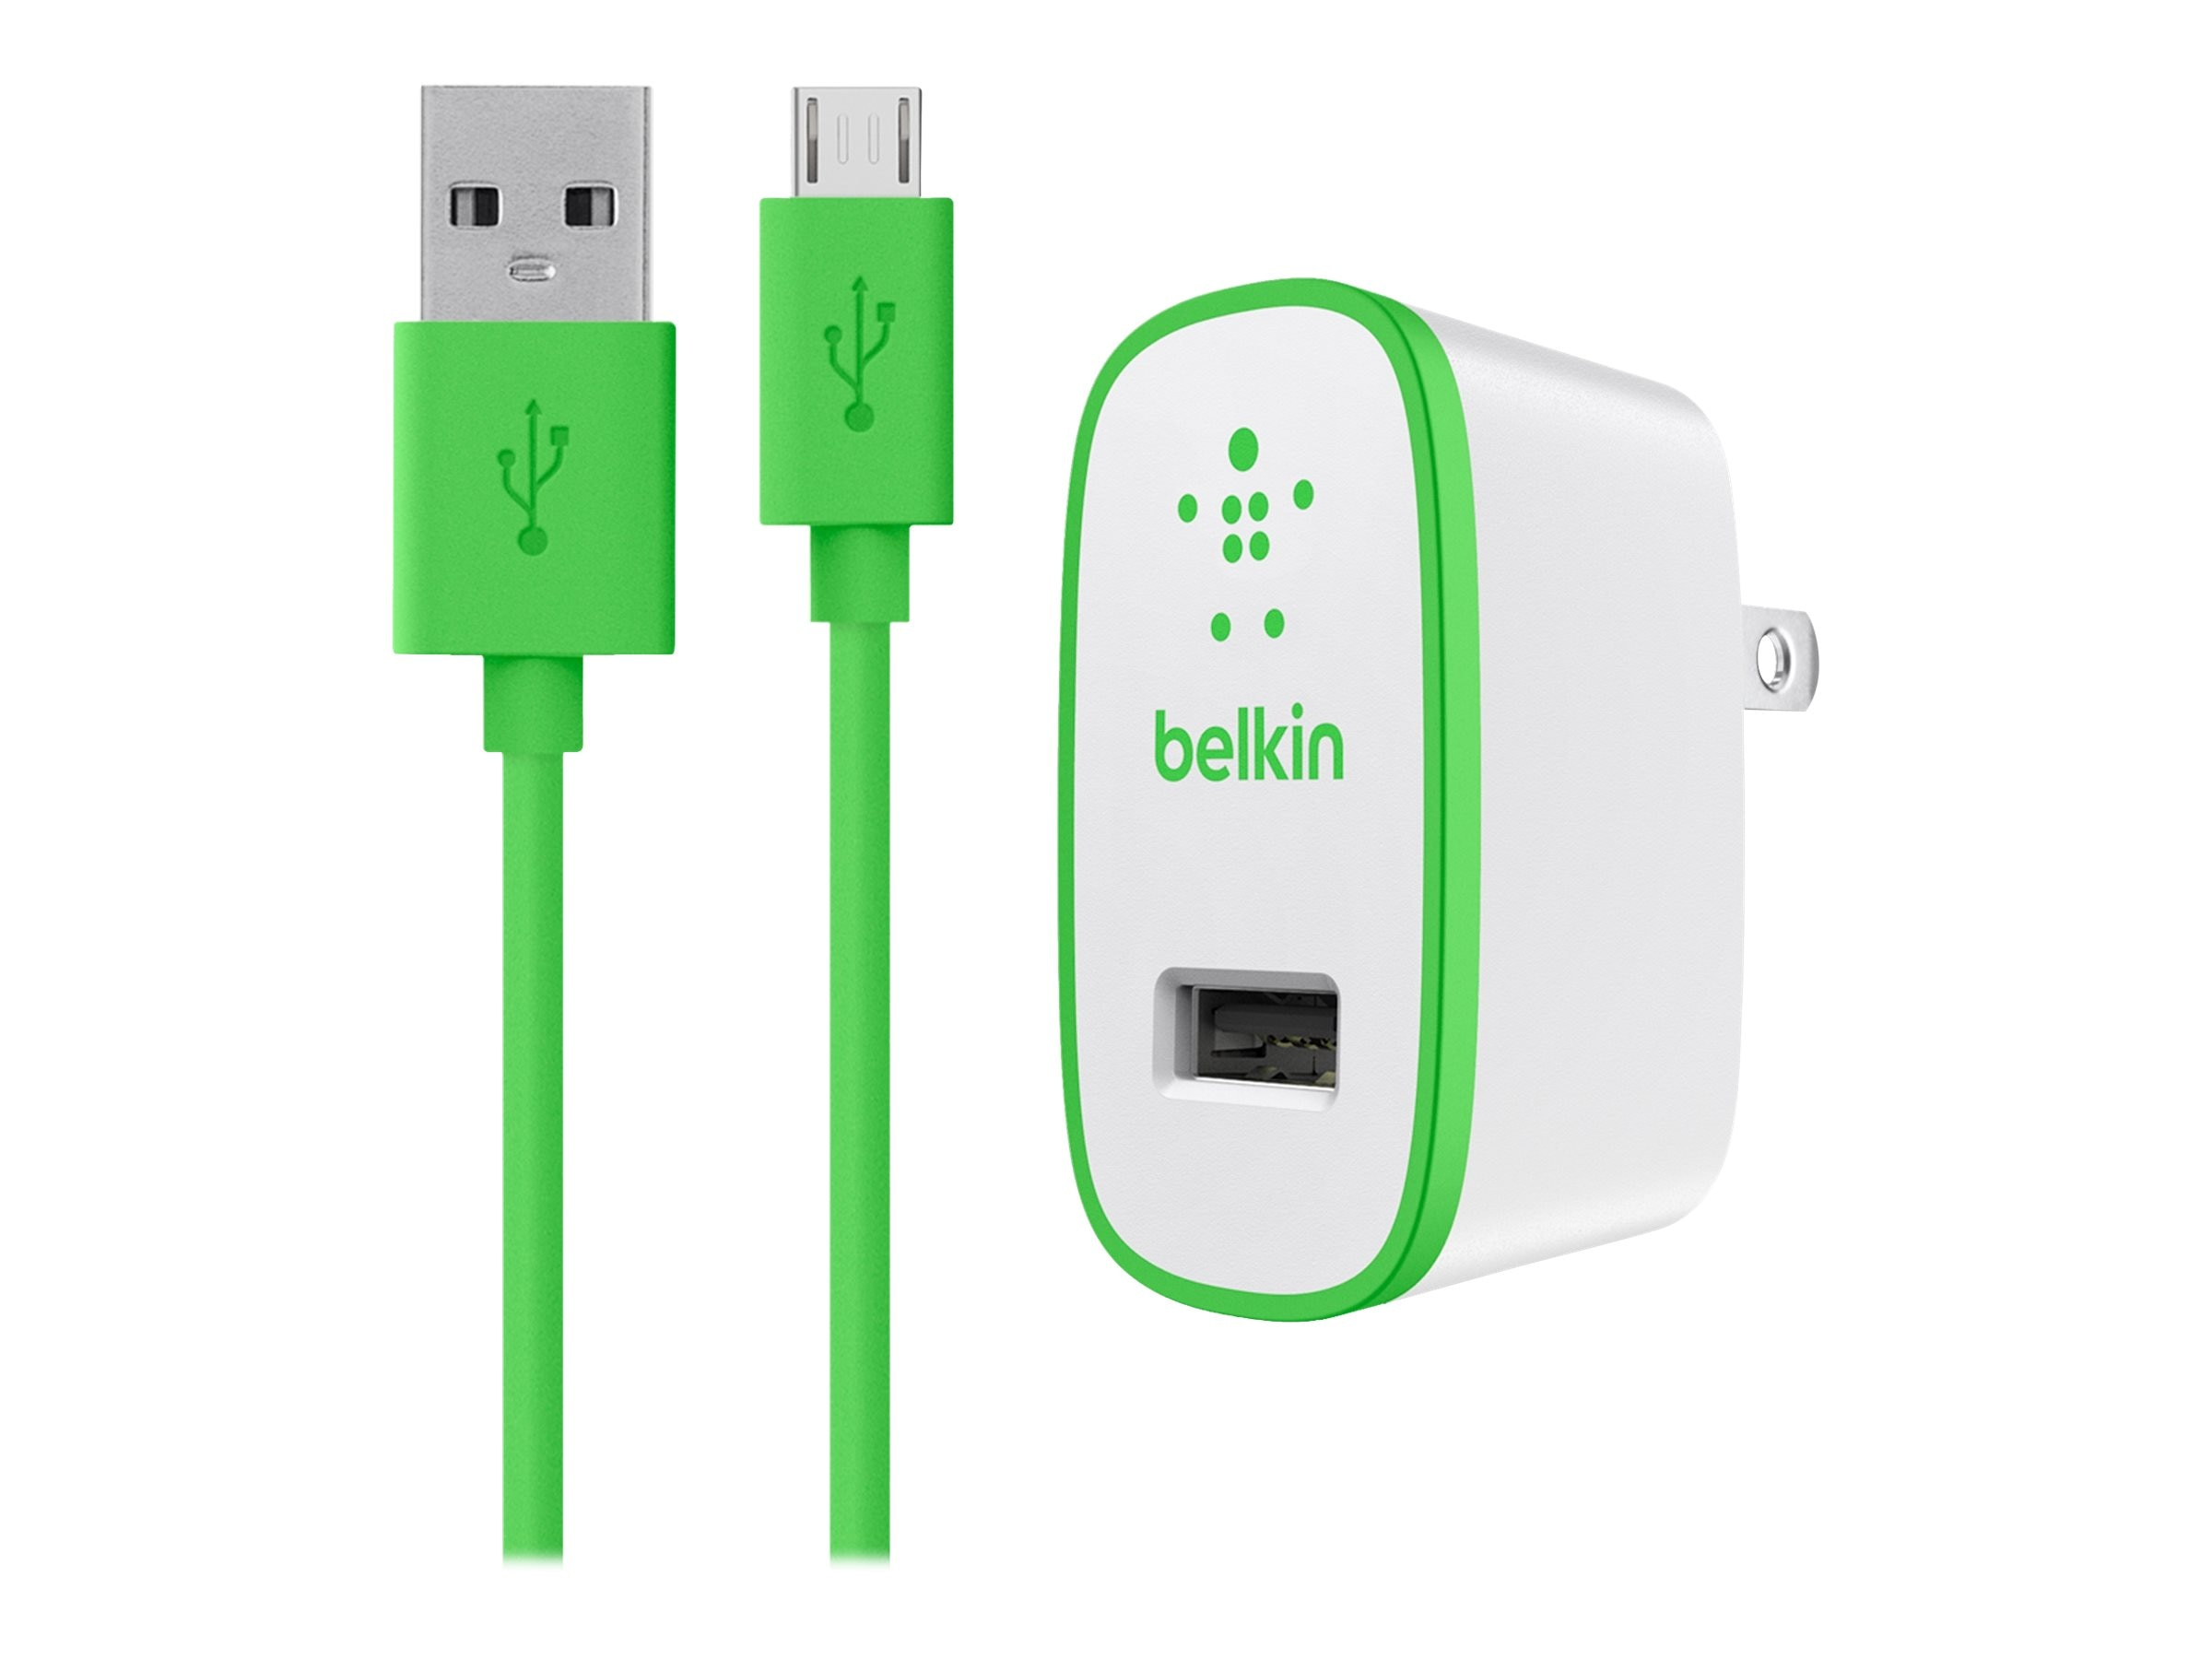 Belkin Universal Home Charger, Micro-USB Charge Sync Cable, 10W 2.1A, Green, F8M667TT04-GRN